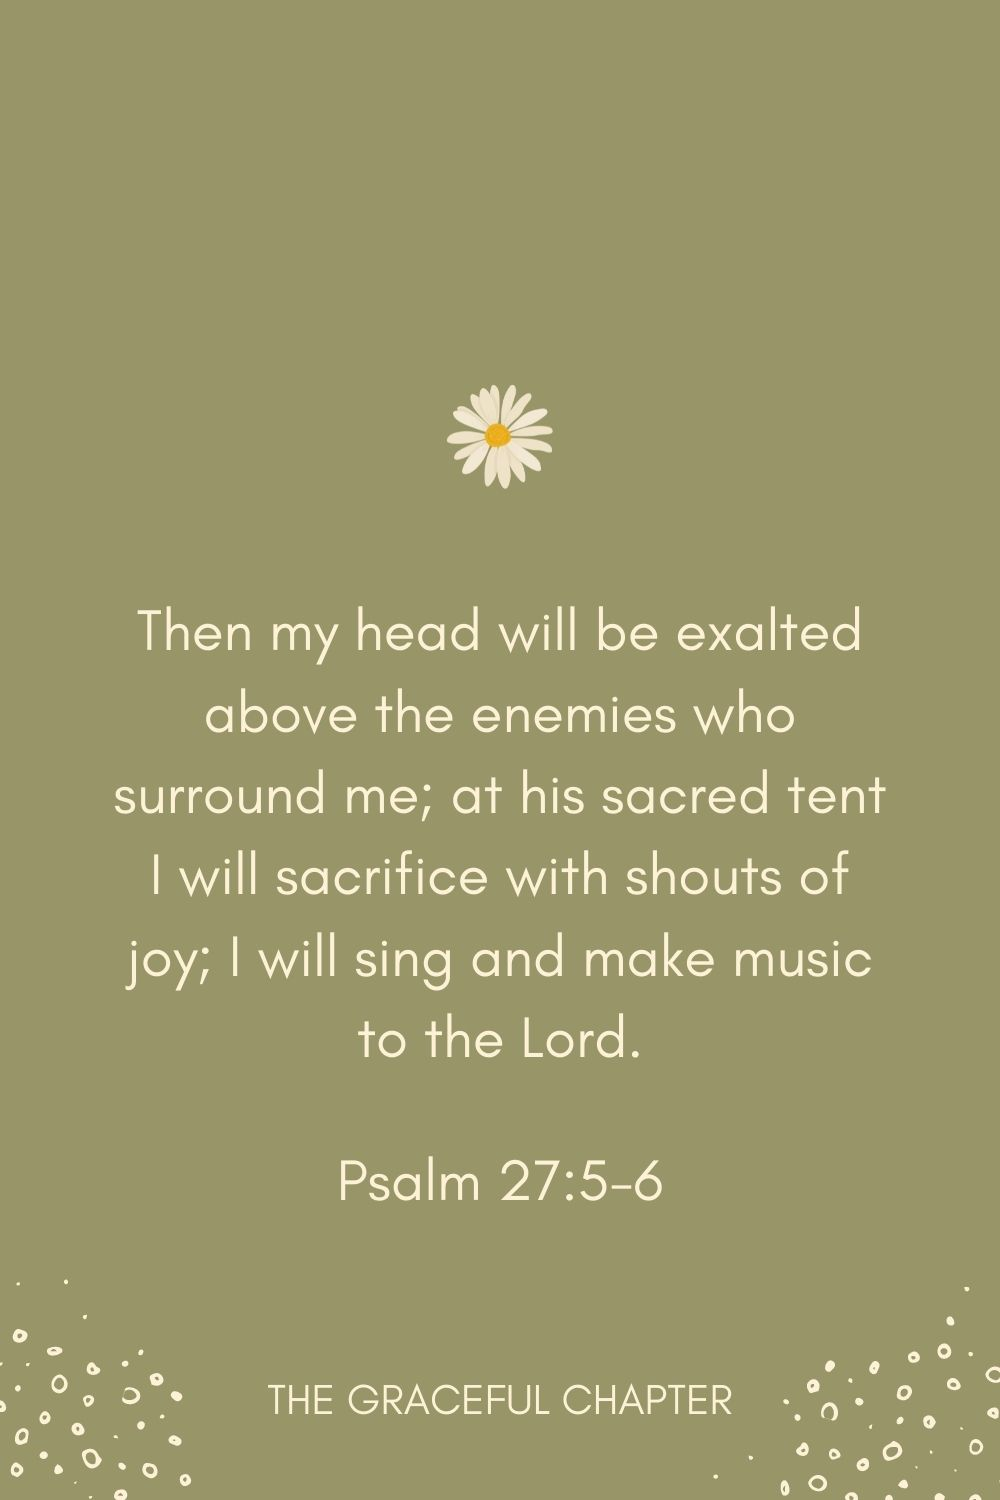 Then my head will be exalted above the enemies who surround me; at his sacred tent I will sacrifice with shouts of joy; I will sing and make music to the Lord. Psalm 27:5-6